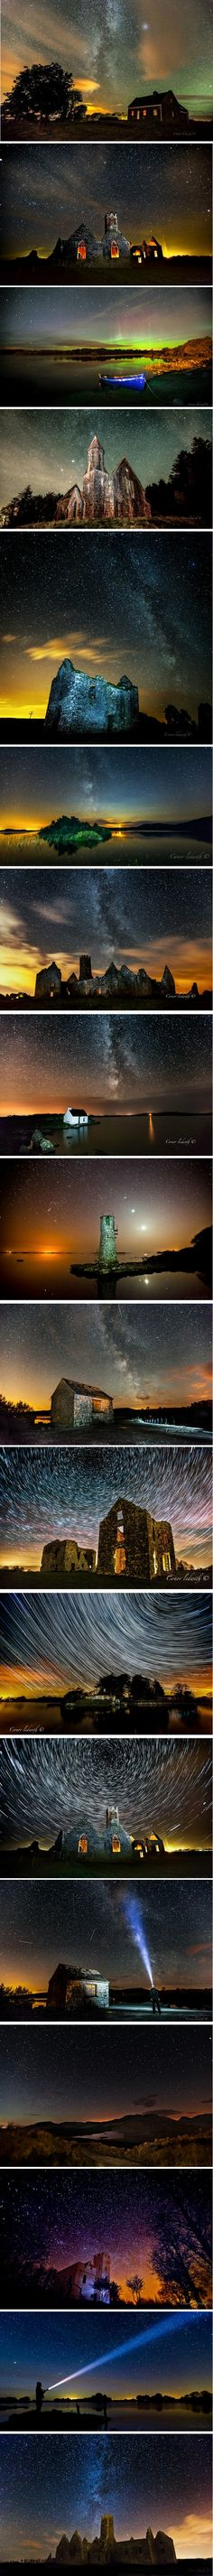 I will never forget the way the night sky looked when I spent time up north. It made me want to forever lay under them and brought me complete comfort and serenity. Just these pictures alone make me think of that and wish I were there right now. Conor Ledwith Photography ( http://500px.com/conorledwith )